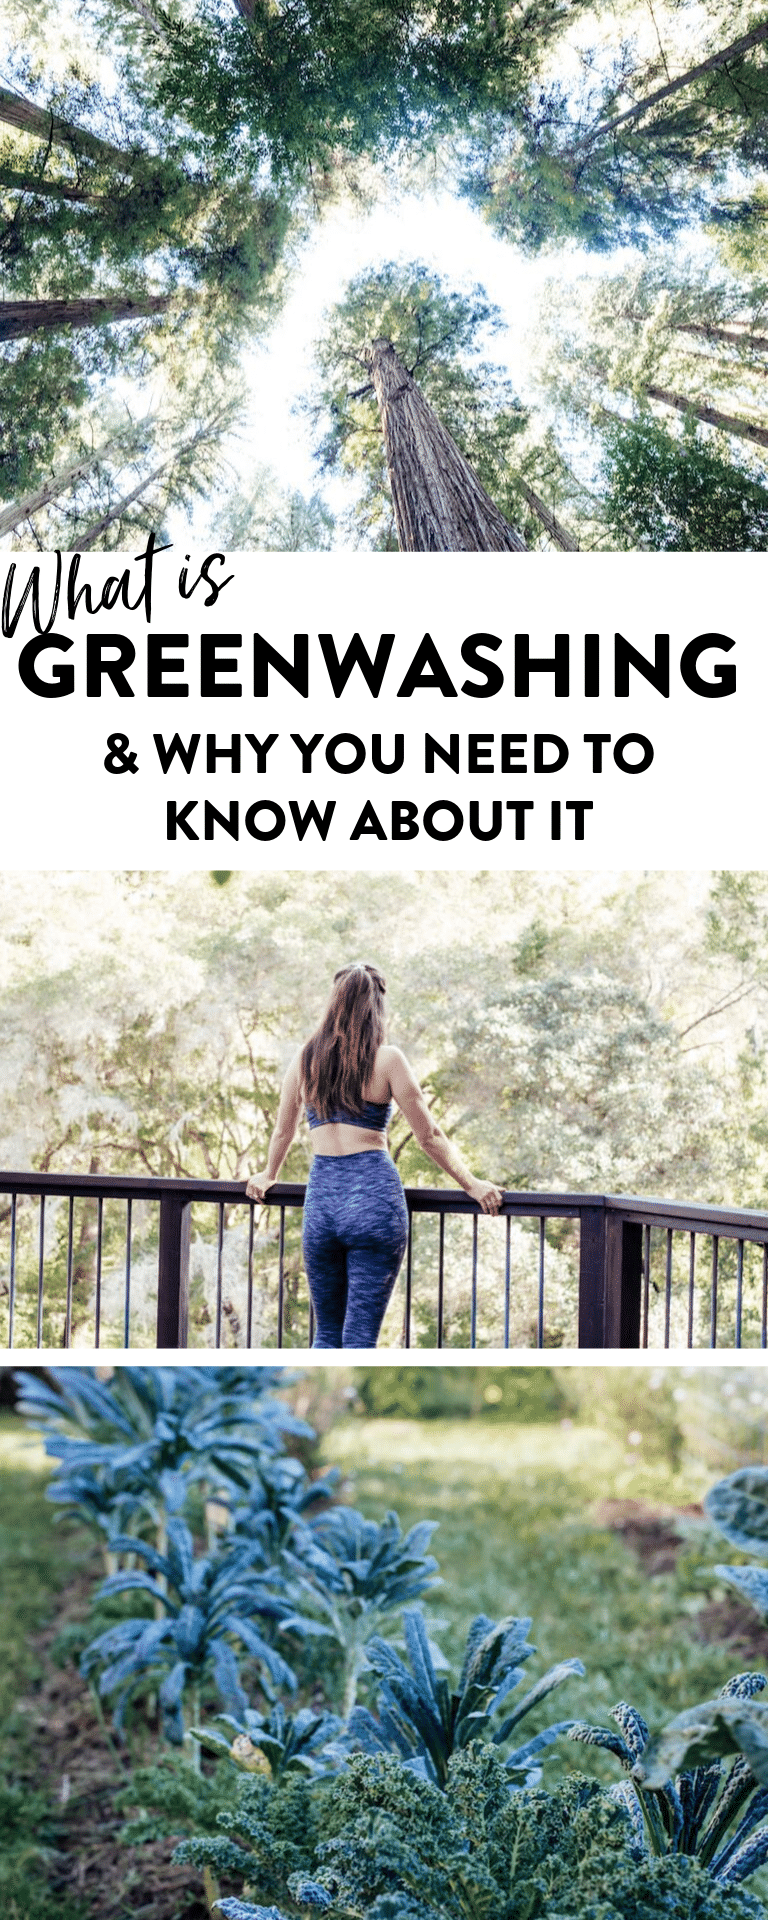 A look at greenwashing and the brands that are greenwashing as well as tips on how to avoid it #sustainability #greenwashing